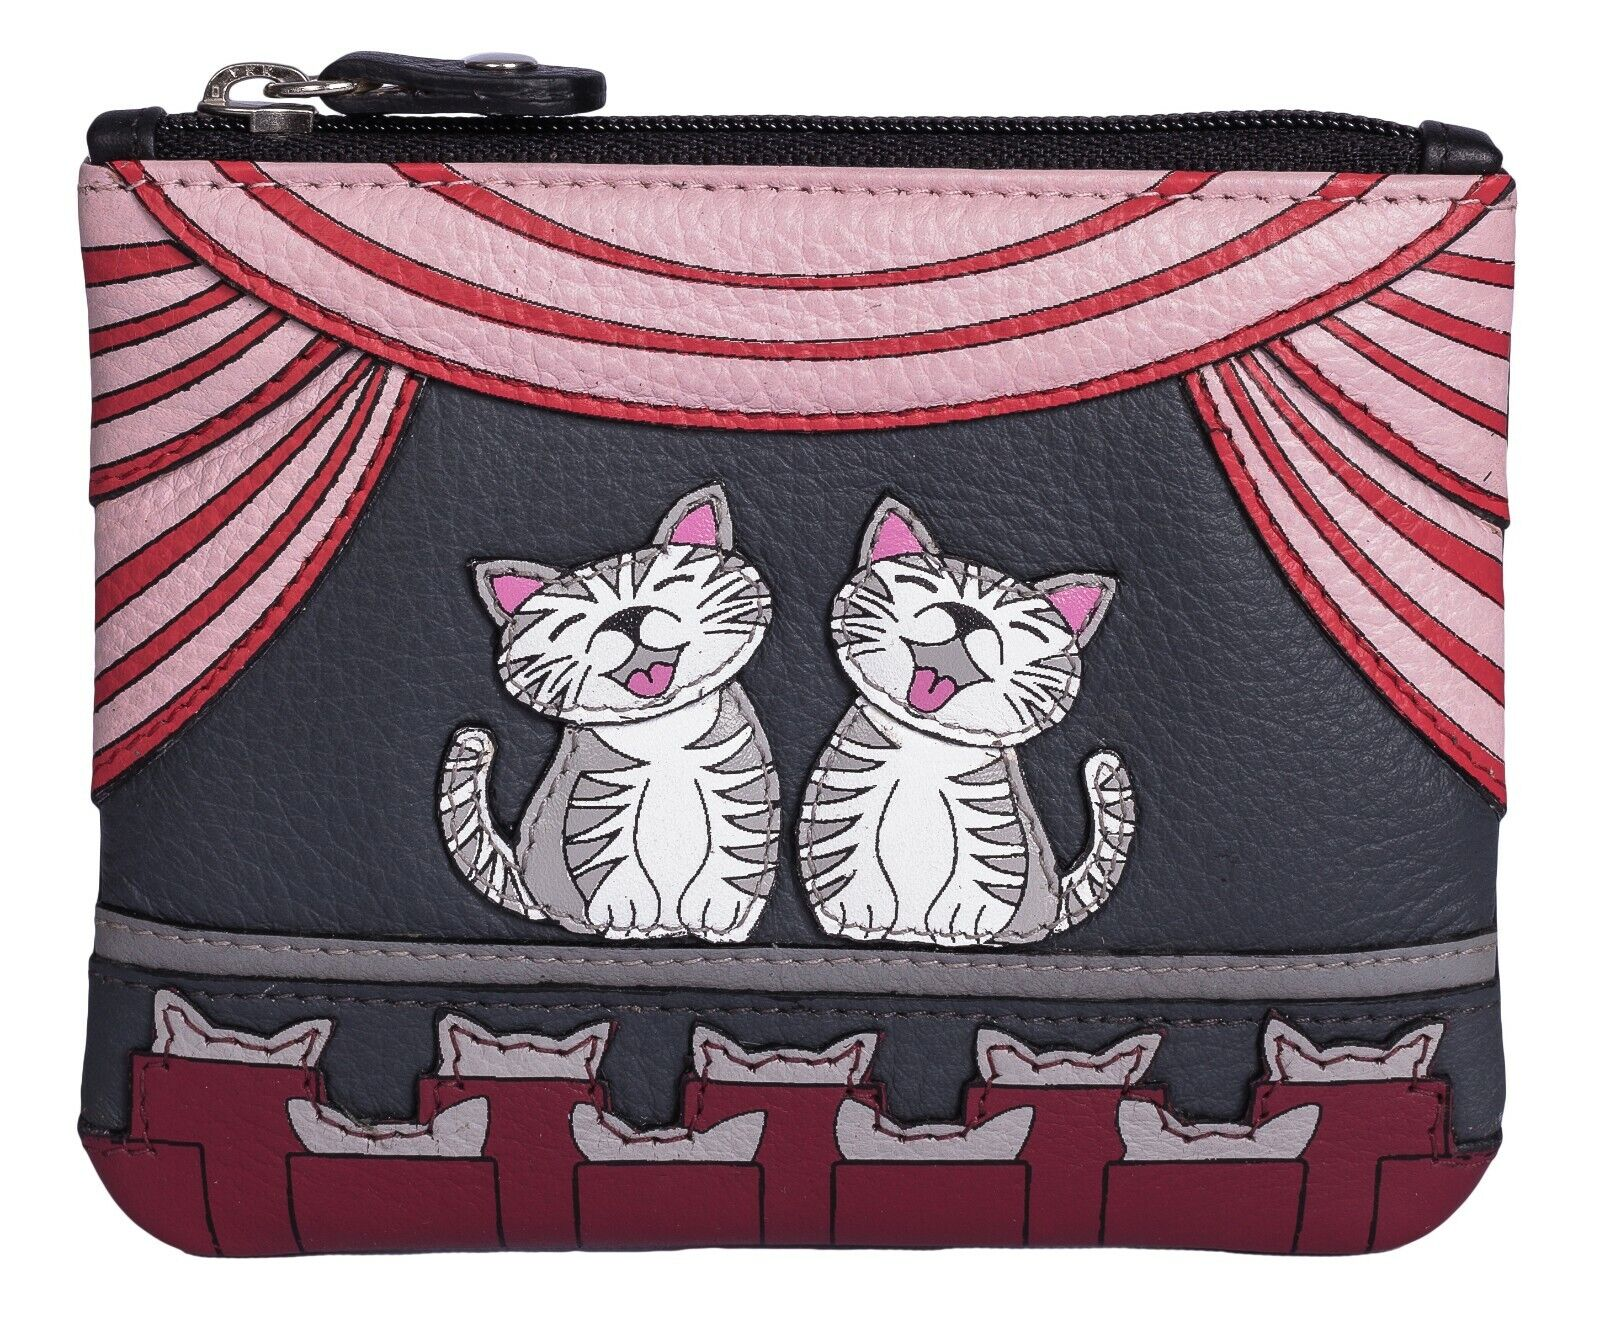 Luxury Cat coin & card purse by Mala Leather 'Cats the Meowiscal' RFID 4209